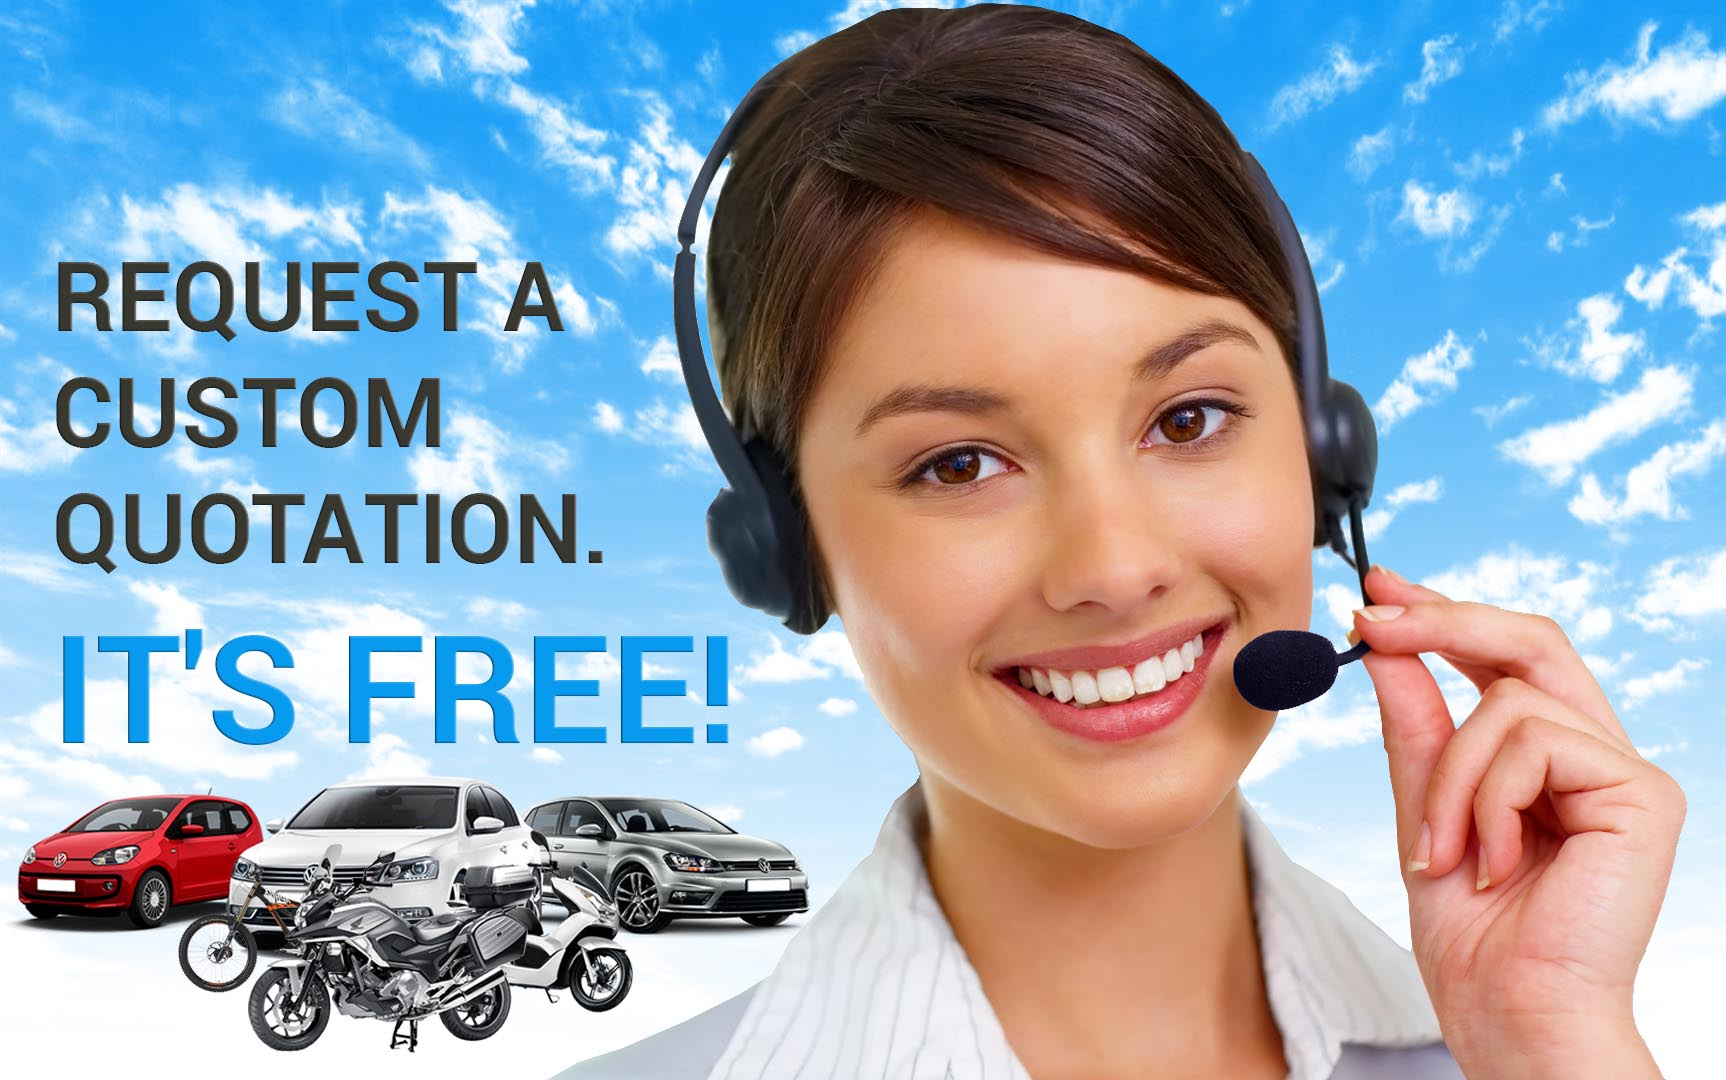 REQUEST A CUSTOM QUOTATION. IT'S FREE!